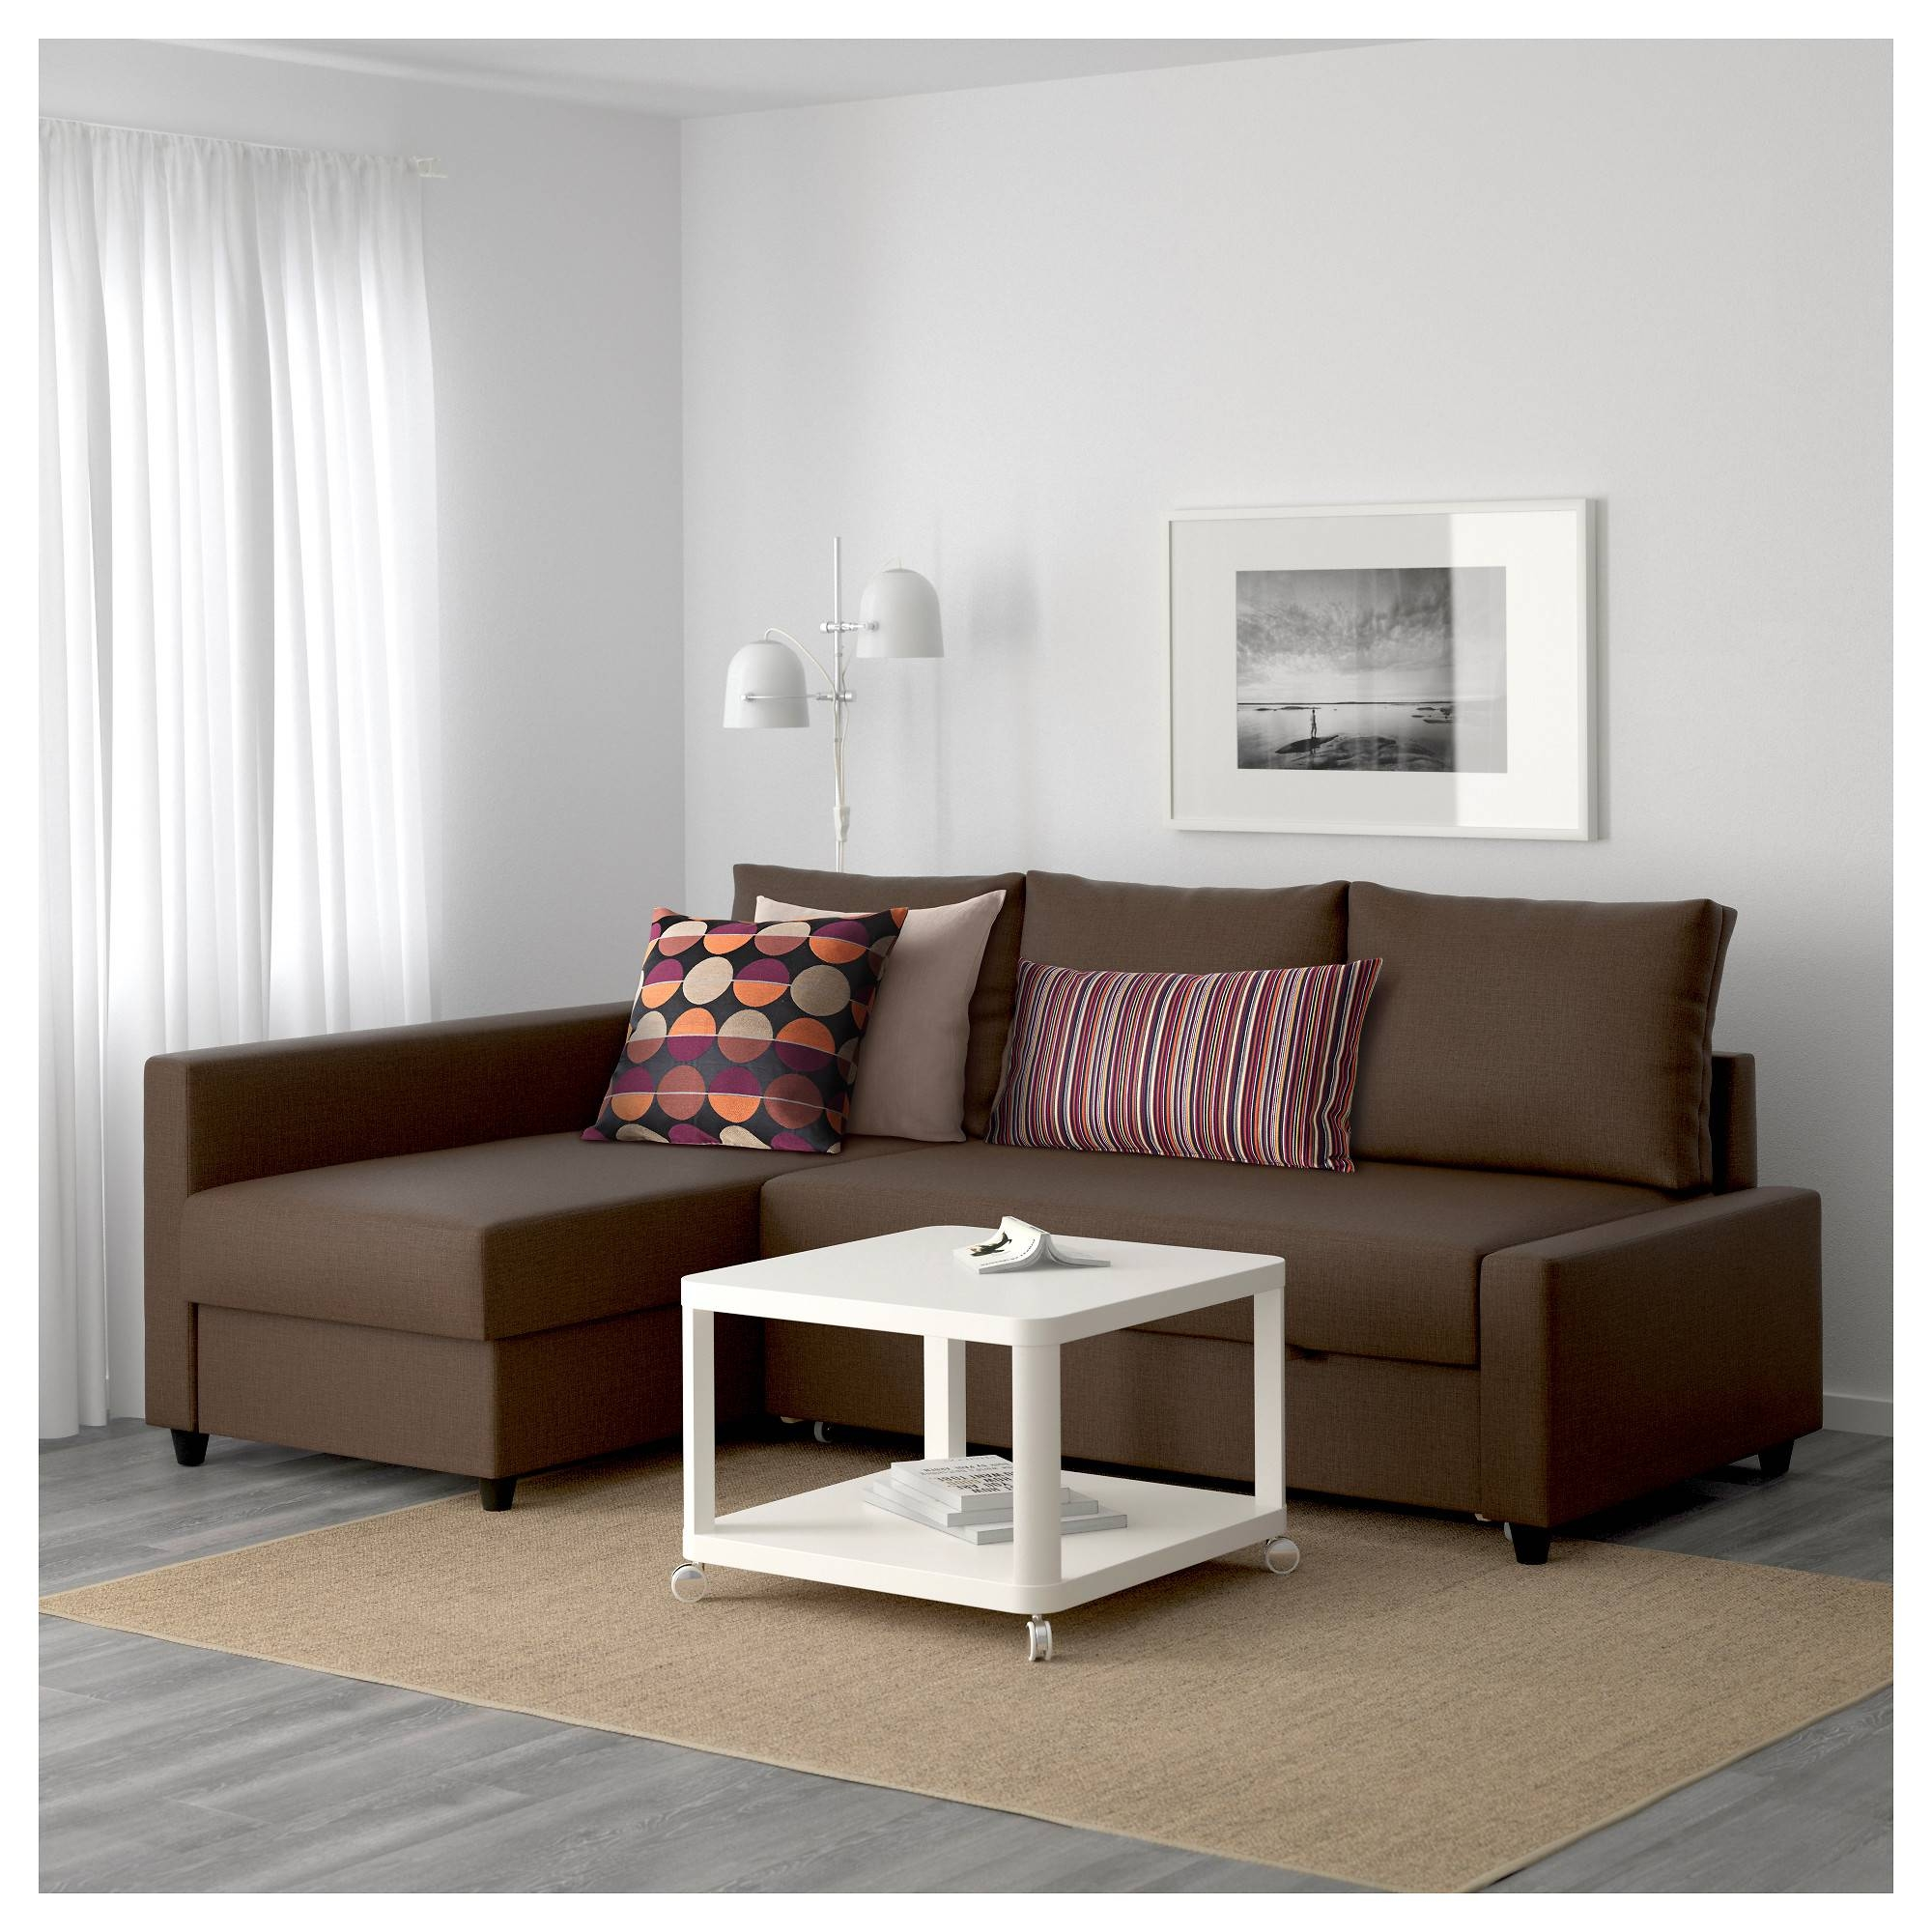 Friheten Corner Sofa-Bed With Storage Skiftebo Brown - Ikea with Ikea Sofa Storage (Image 4 of 25)